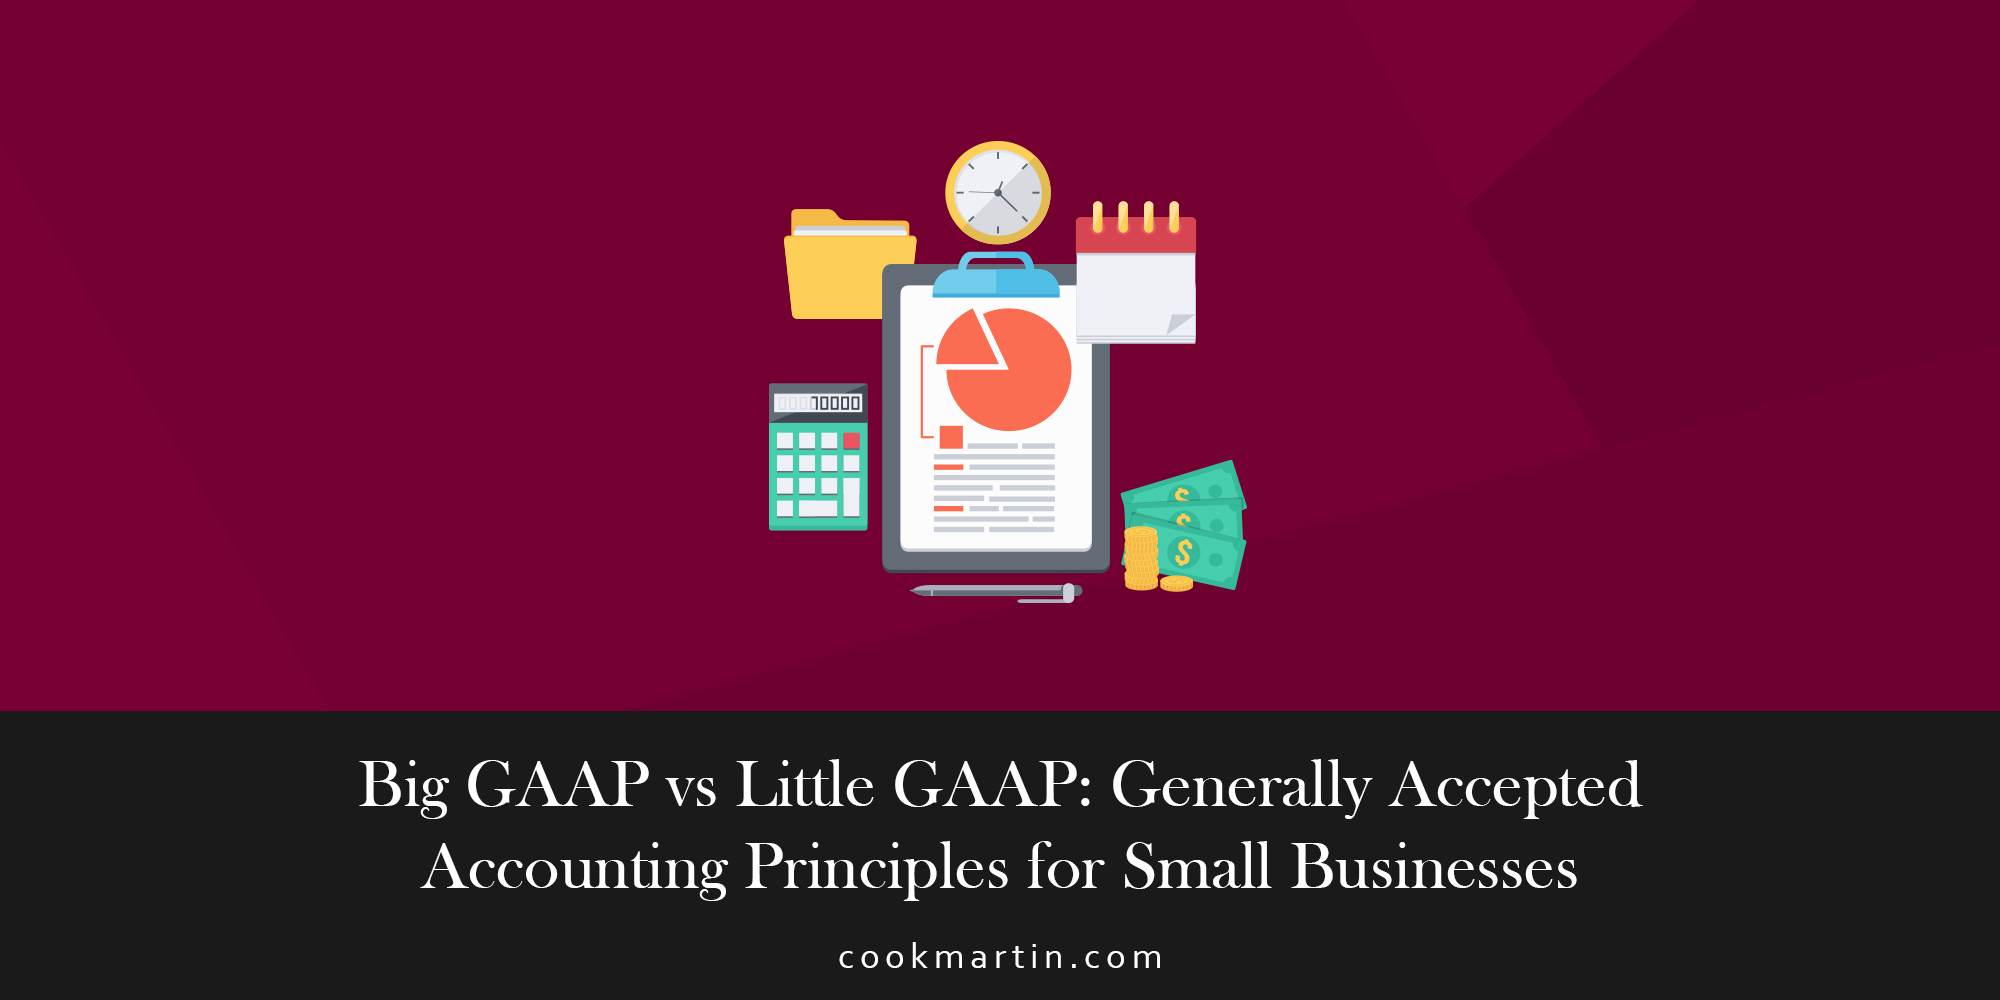 big-gaap-small-gaap-generallly-accepted-accounting-principles-small-business-featured